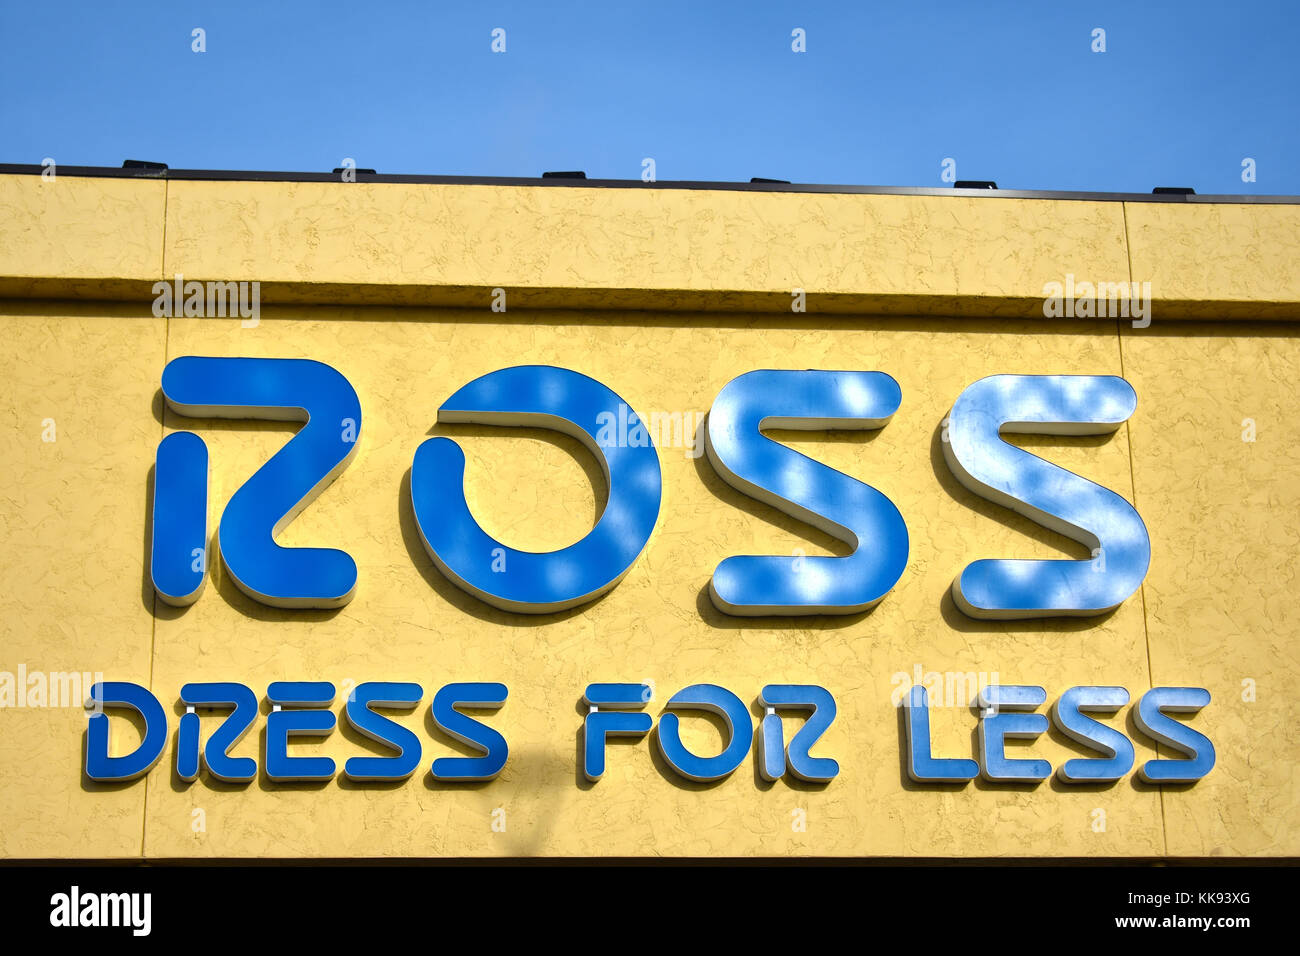 Ross Store Stock Photos & Ross Store Stock Images - Alamy